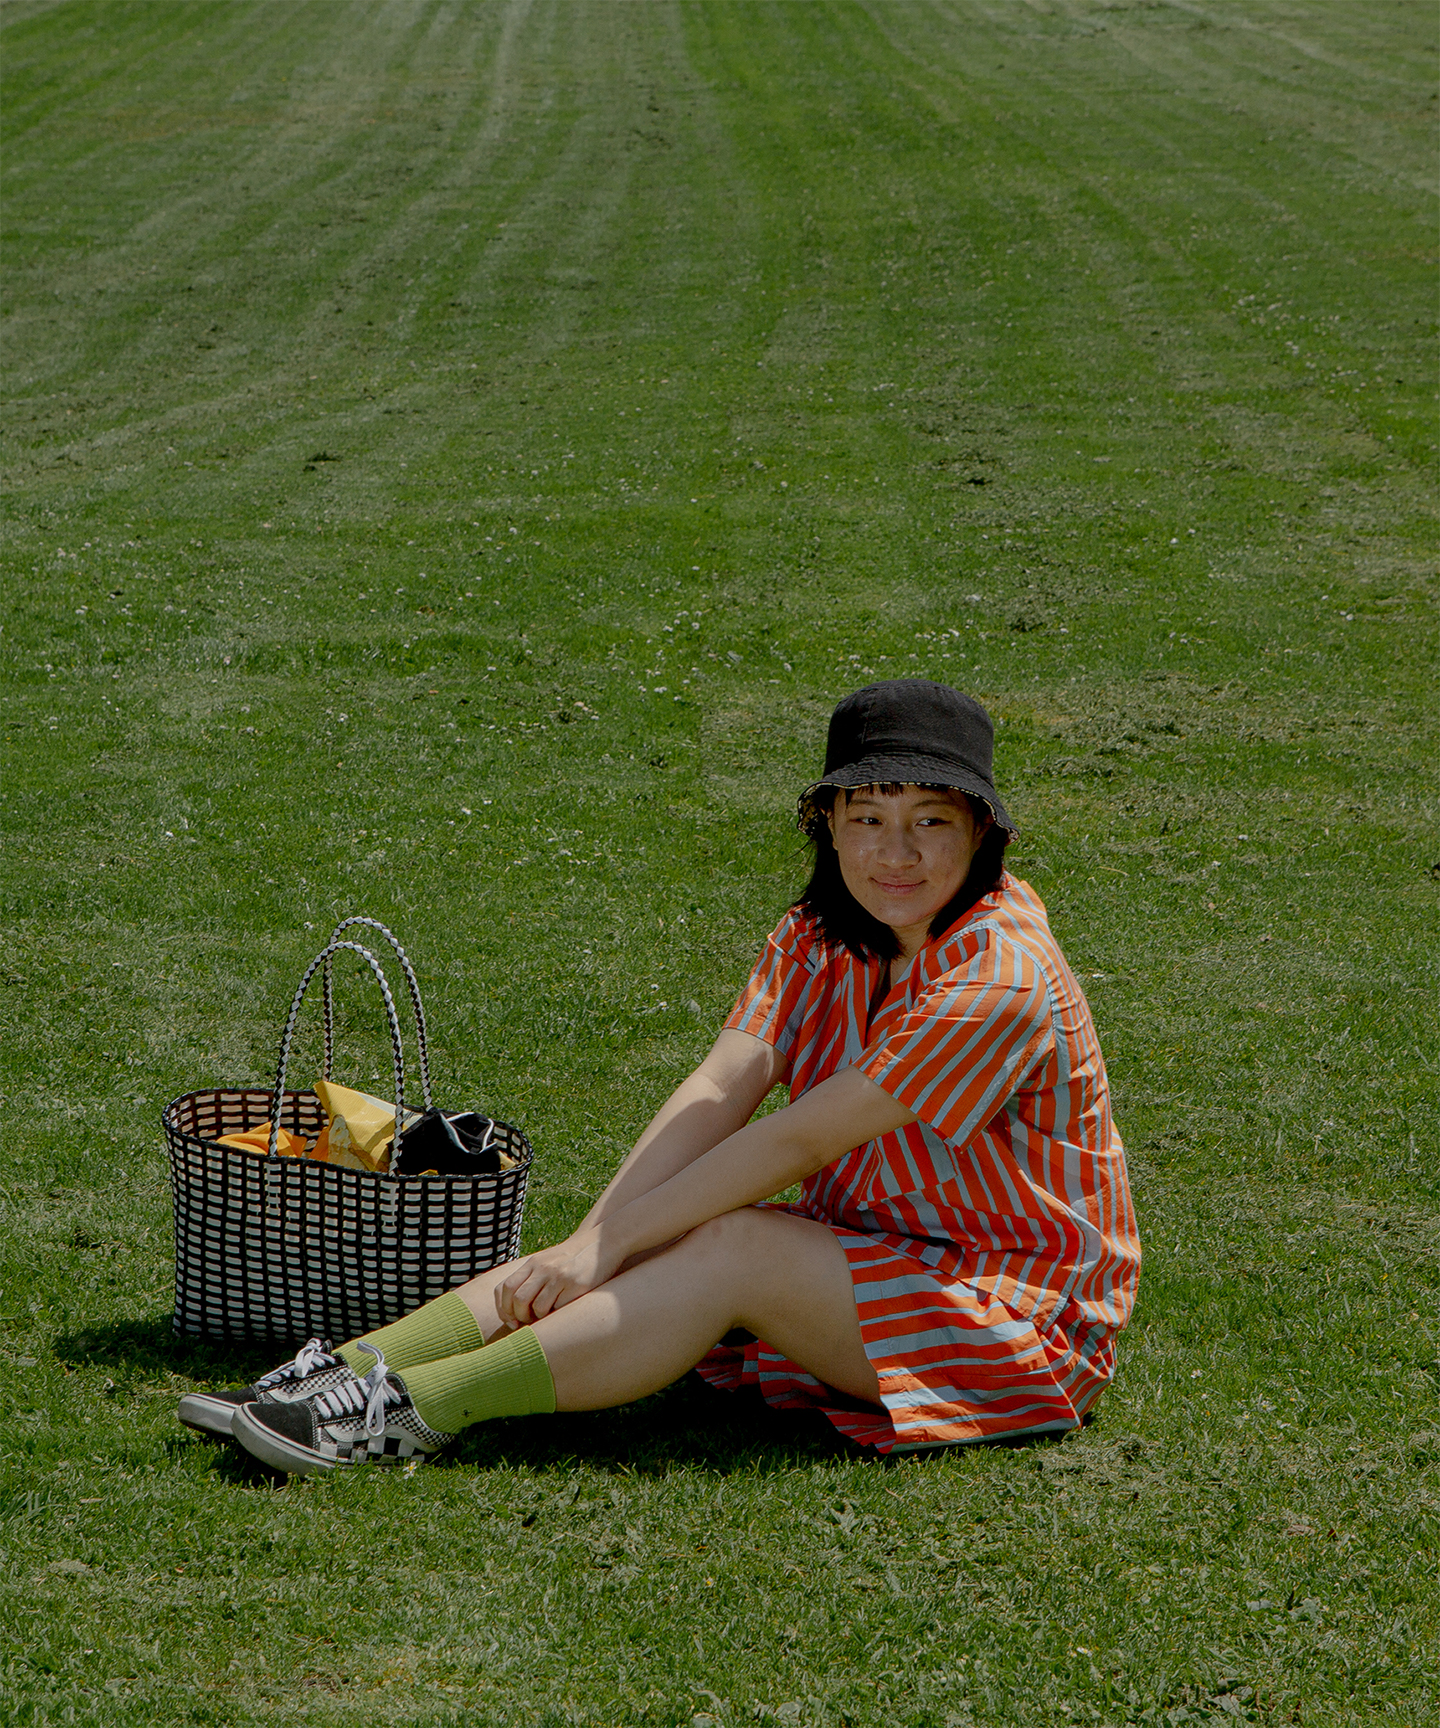 Fanny Luor sitting on grass